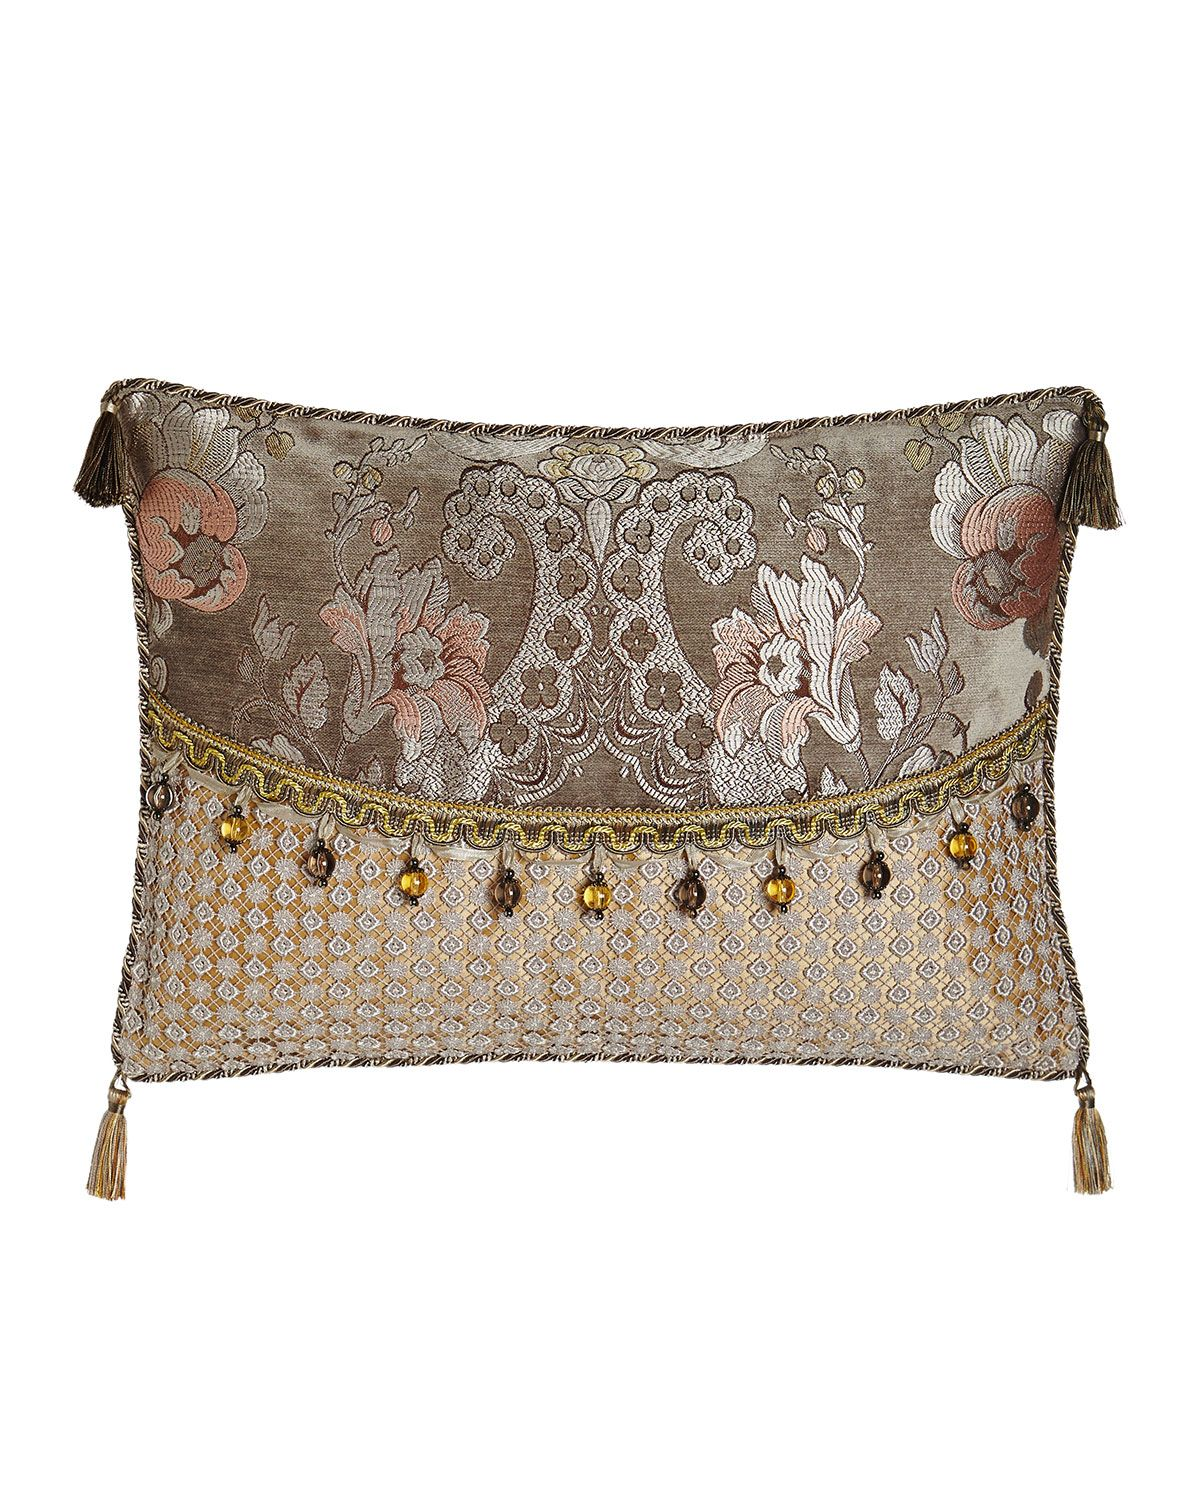 Sweet Dreams French Chateau Pieced Pillow With Bead Trim 19 X 16 Beaded Pillow Decorative Pillows Silver Pillows